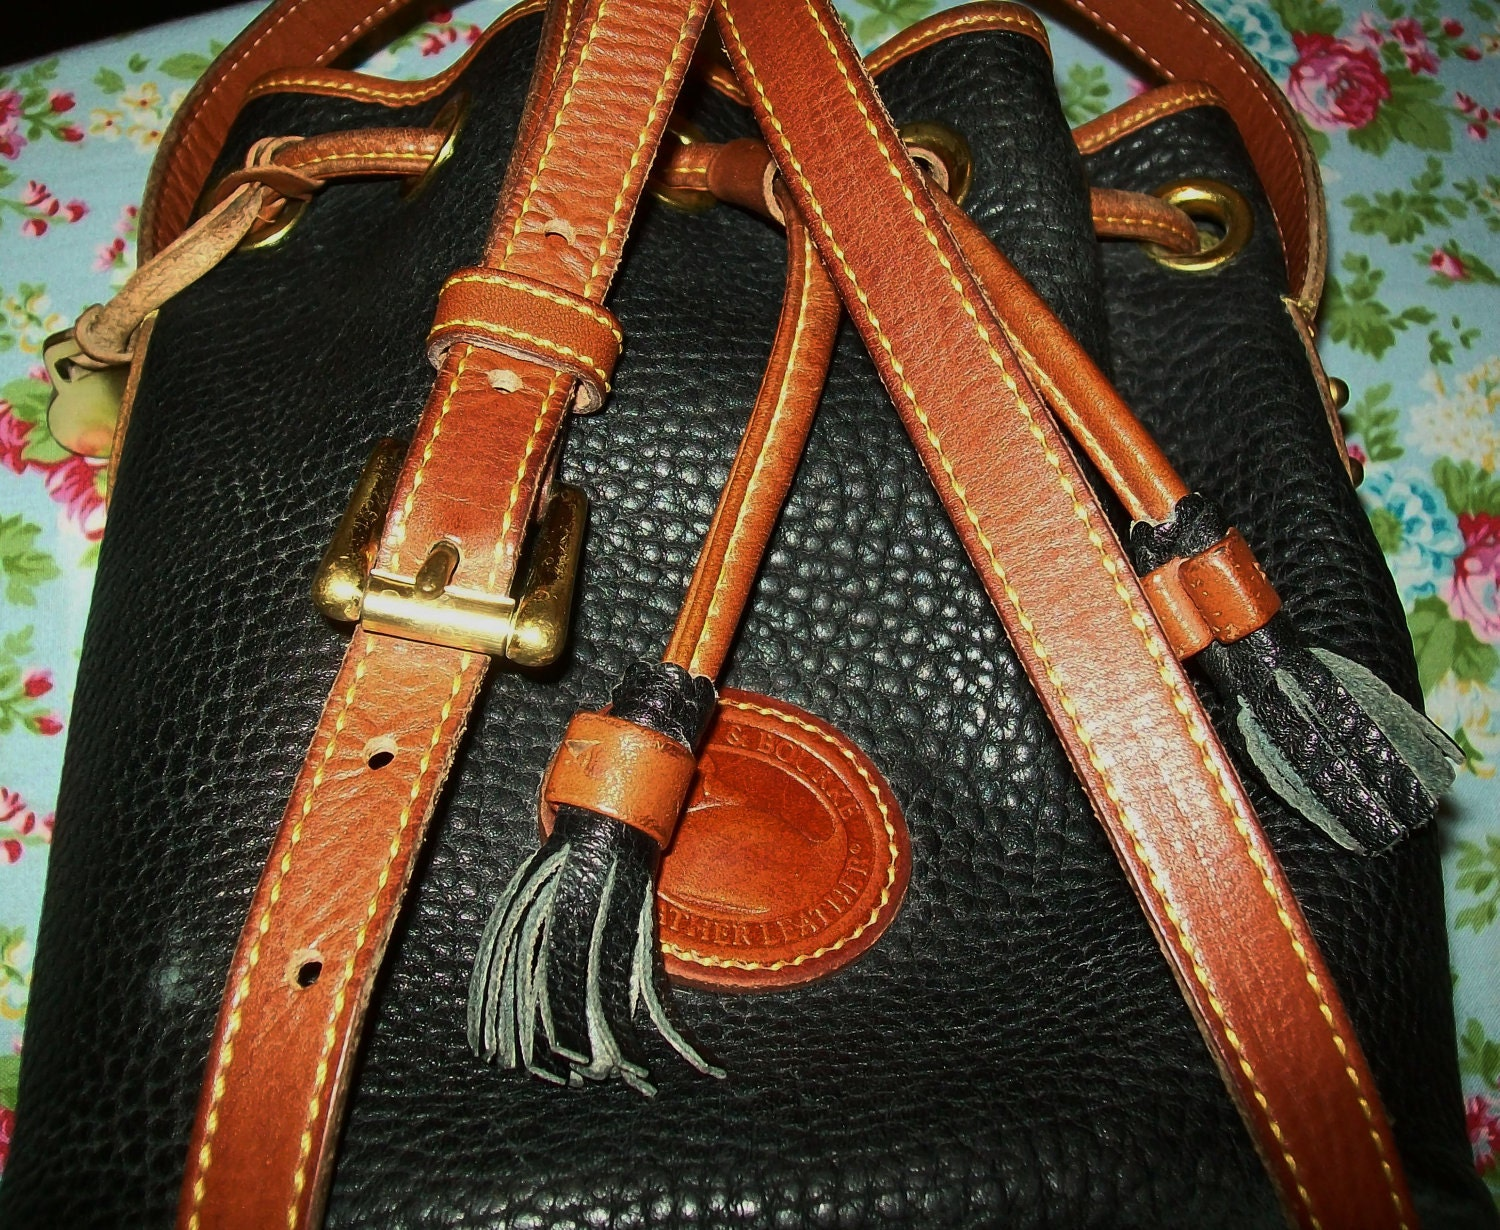 Review of my Dooney & Bourke Florentine Satchel in the color Natural